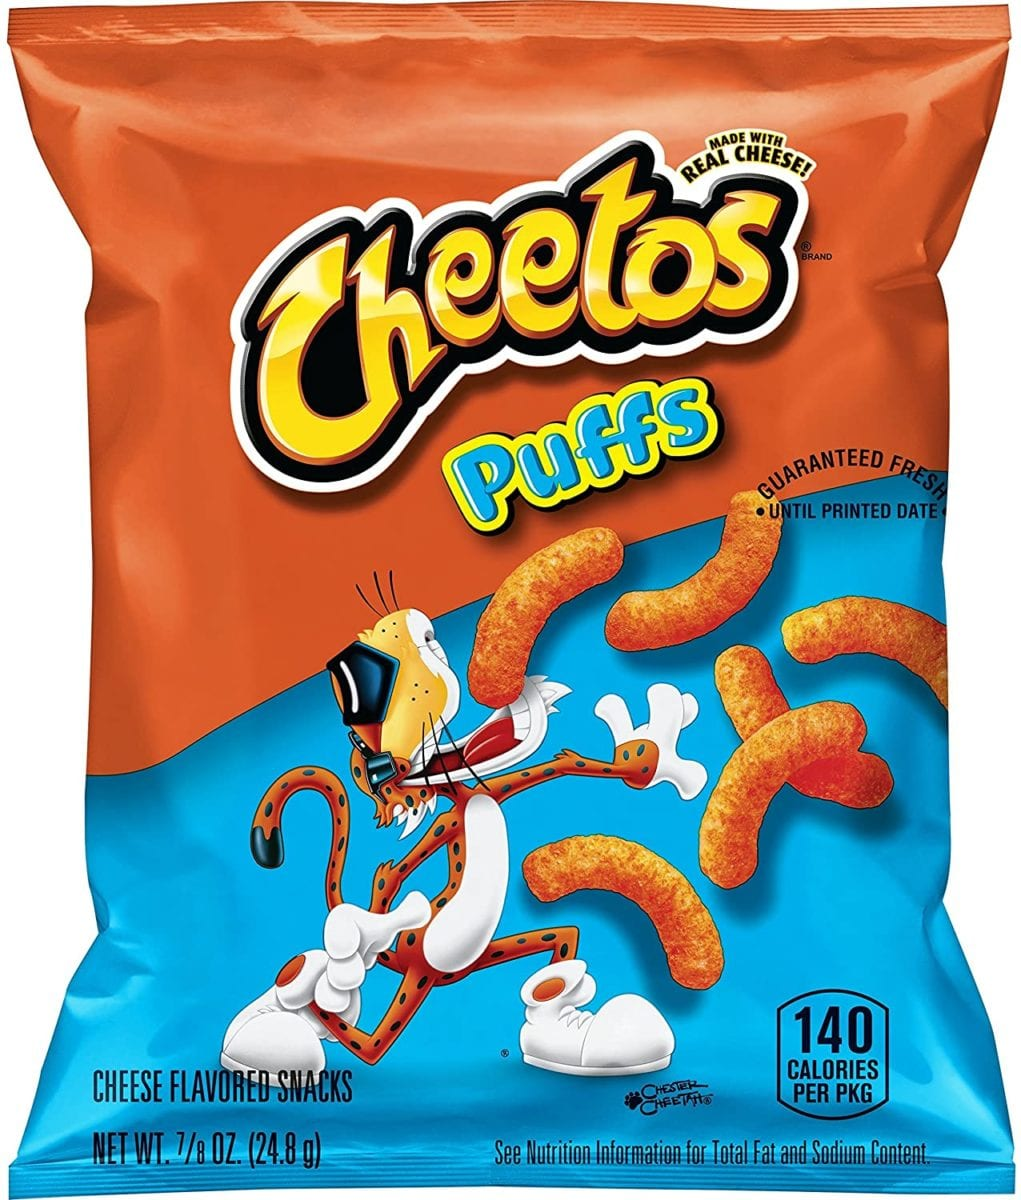 Cheetos Puffs Snack Bags